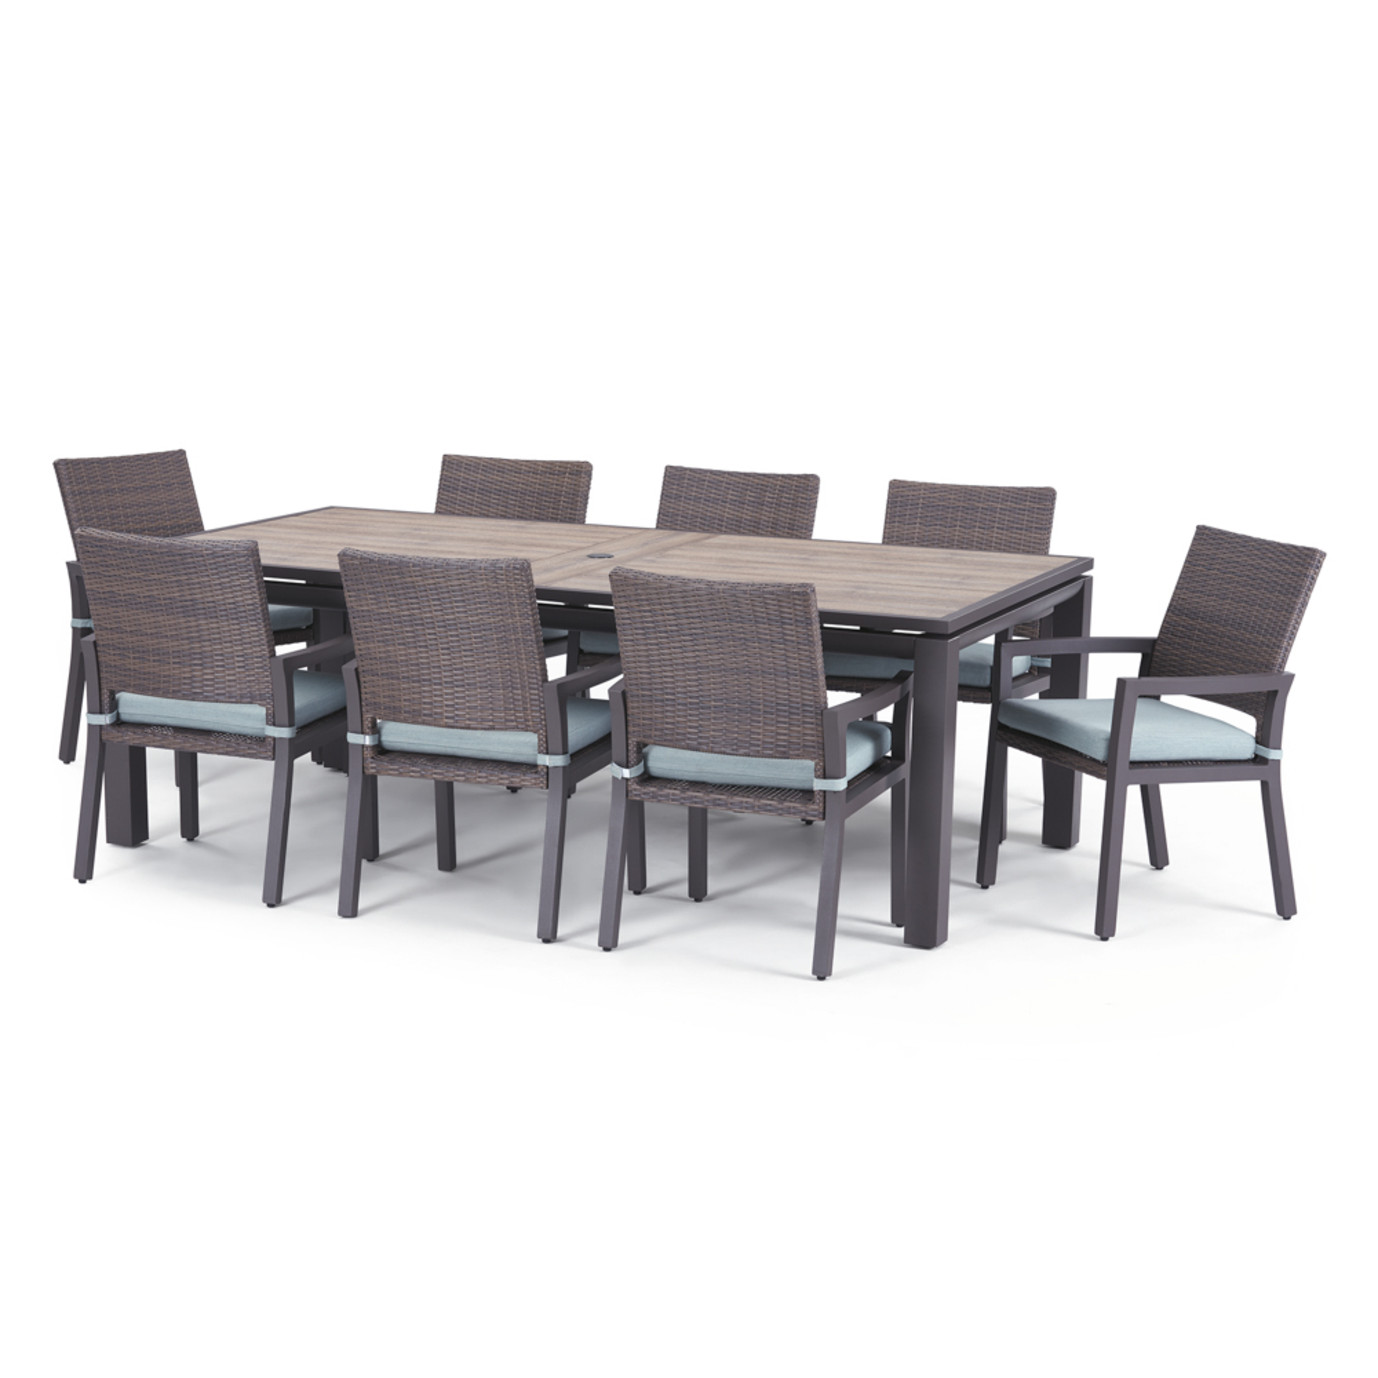 Milea 9 Piece Dining Set - Mist Blue